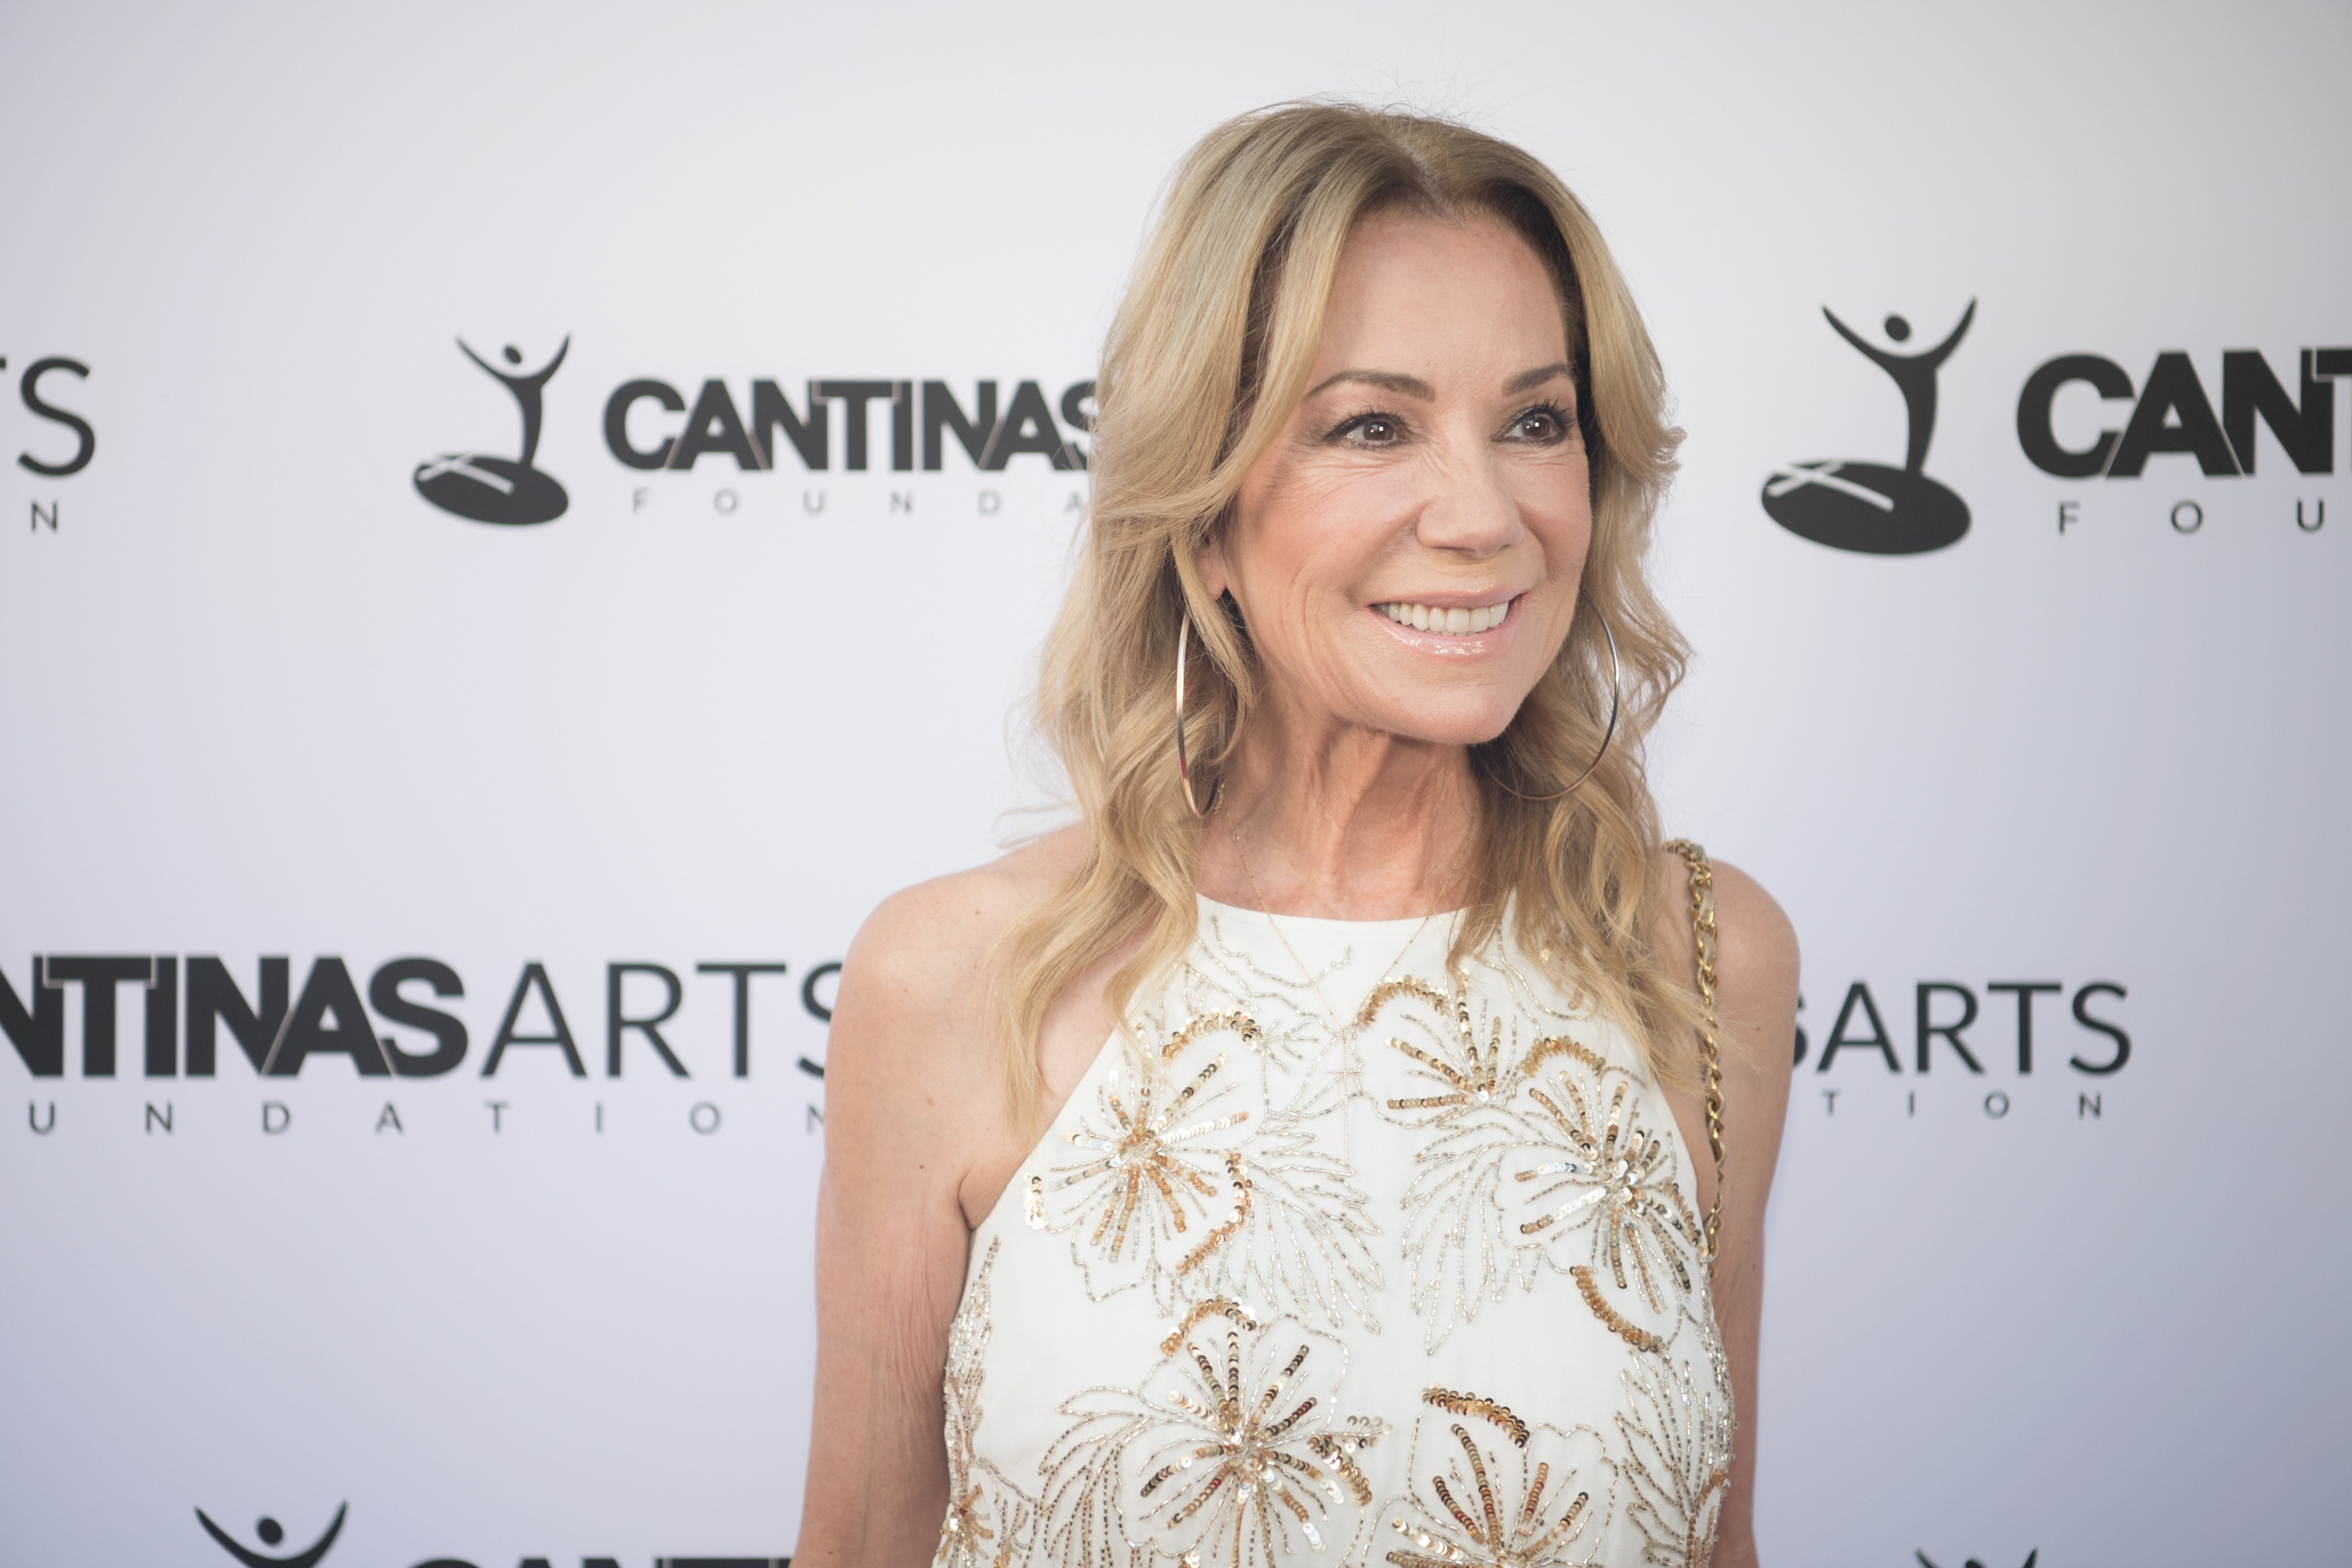 Kathie Lee Gifford arrives at The Cantinas Arts Foundation COTA Celebration of the Arts on September 15, 2018, in Malibu, California. | Source: Getty Images.